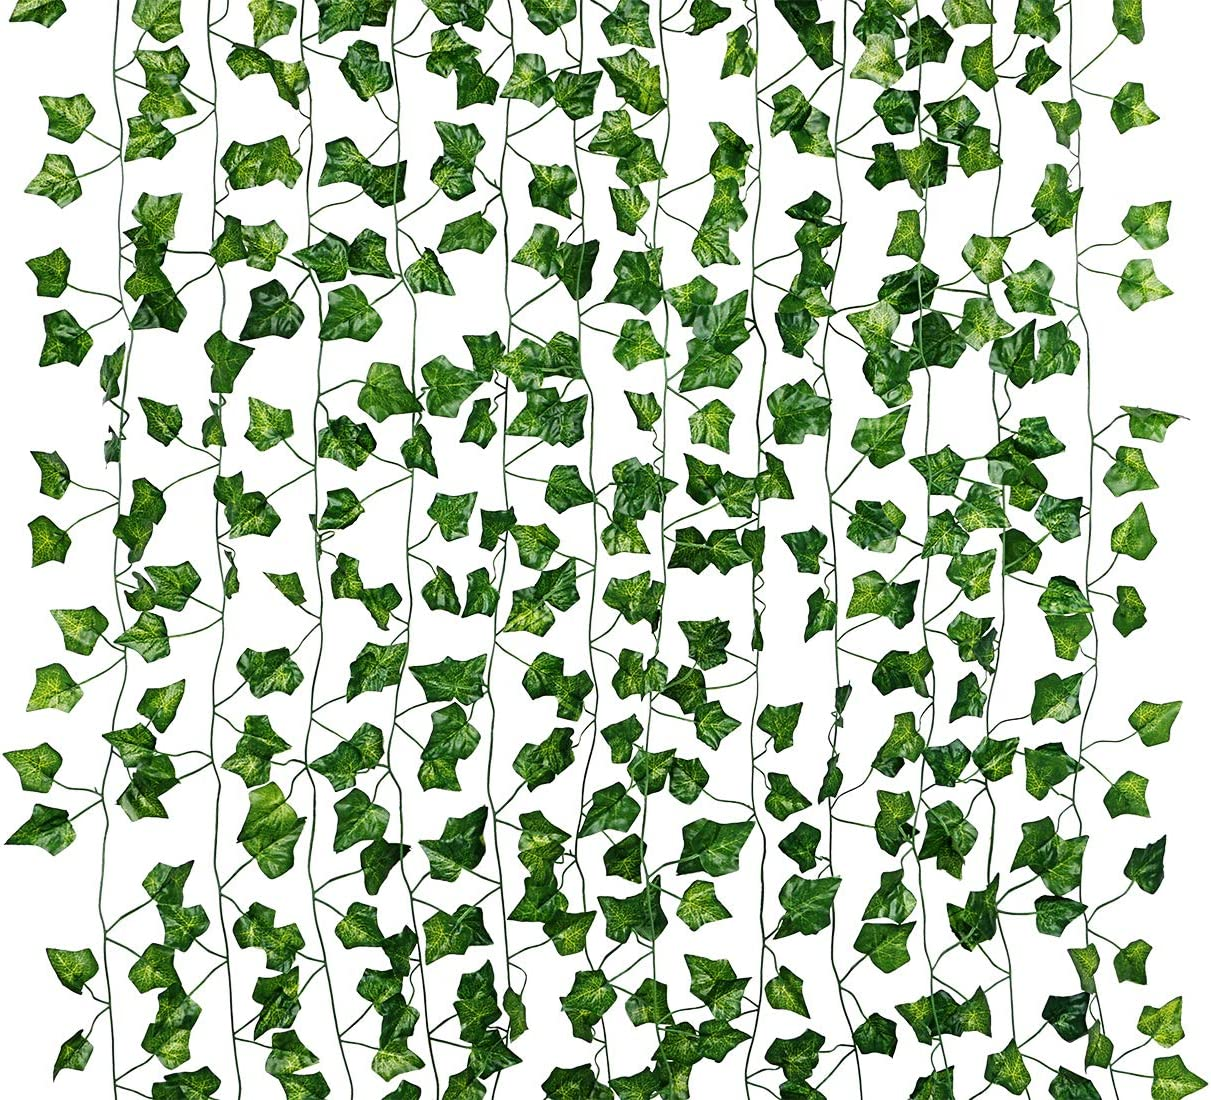 Dedoot Ivy Garland, 12 Pack (79 Inch Each) Green Fake Ivy Garland Vine Hanging Artificial Ivy Leaves for Craft Wedding Party Wall and Home Decor